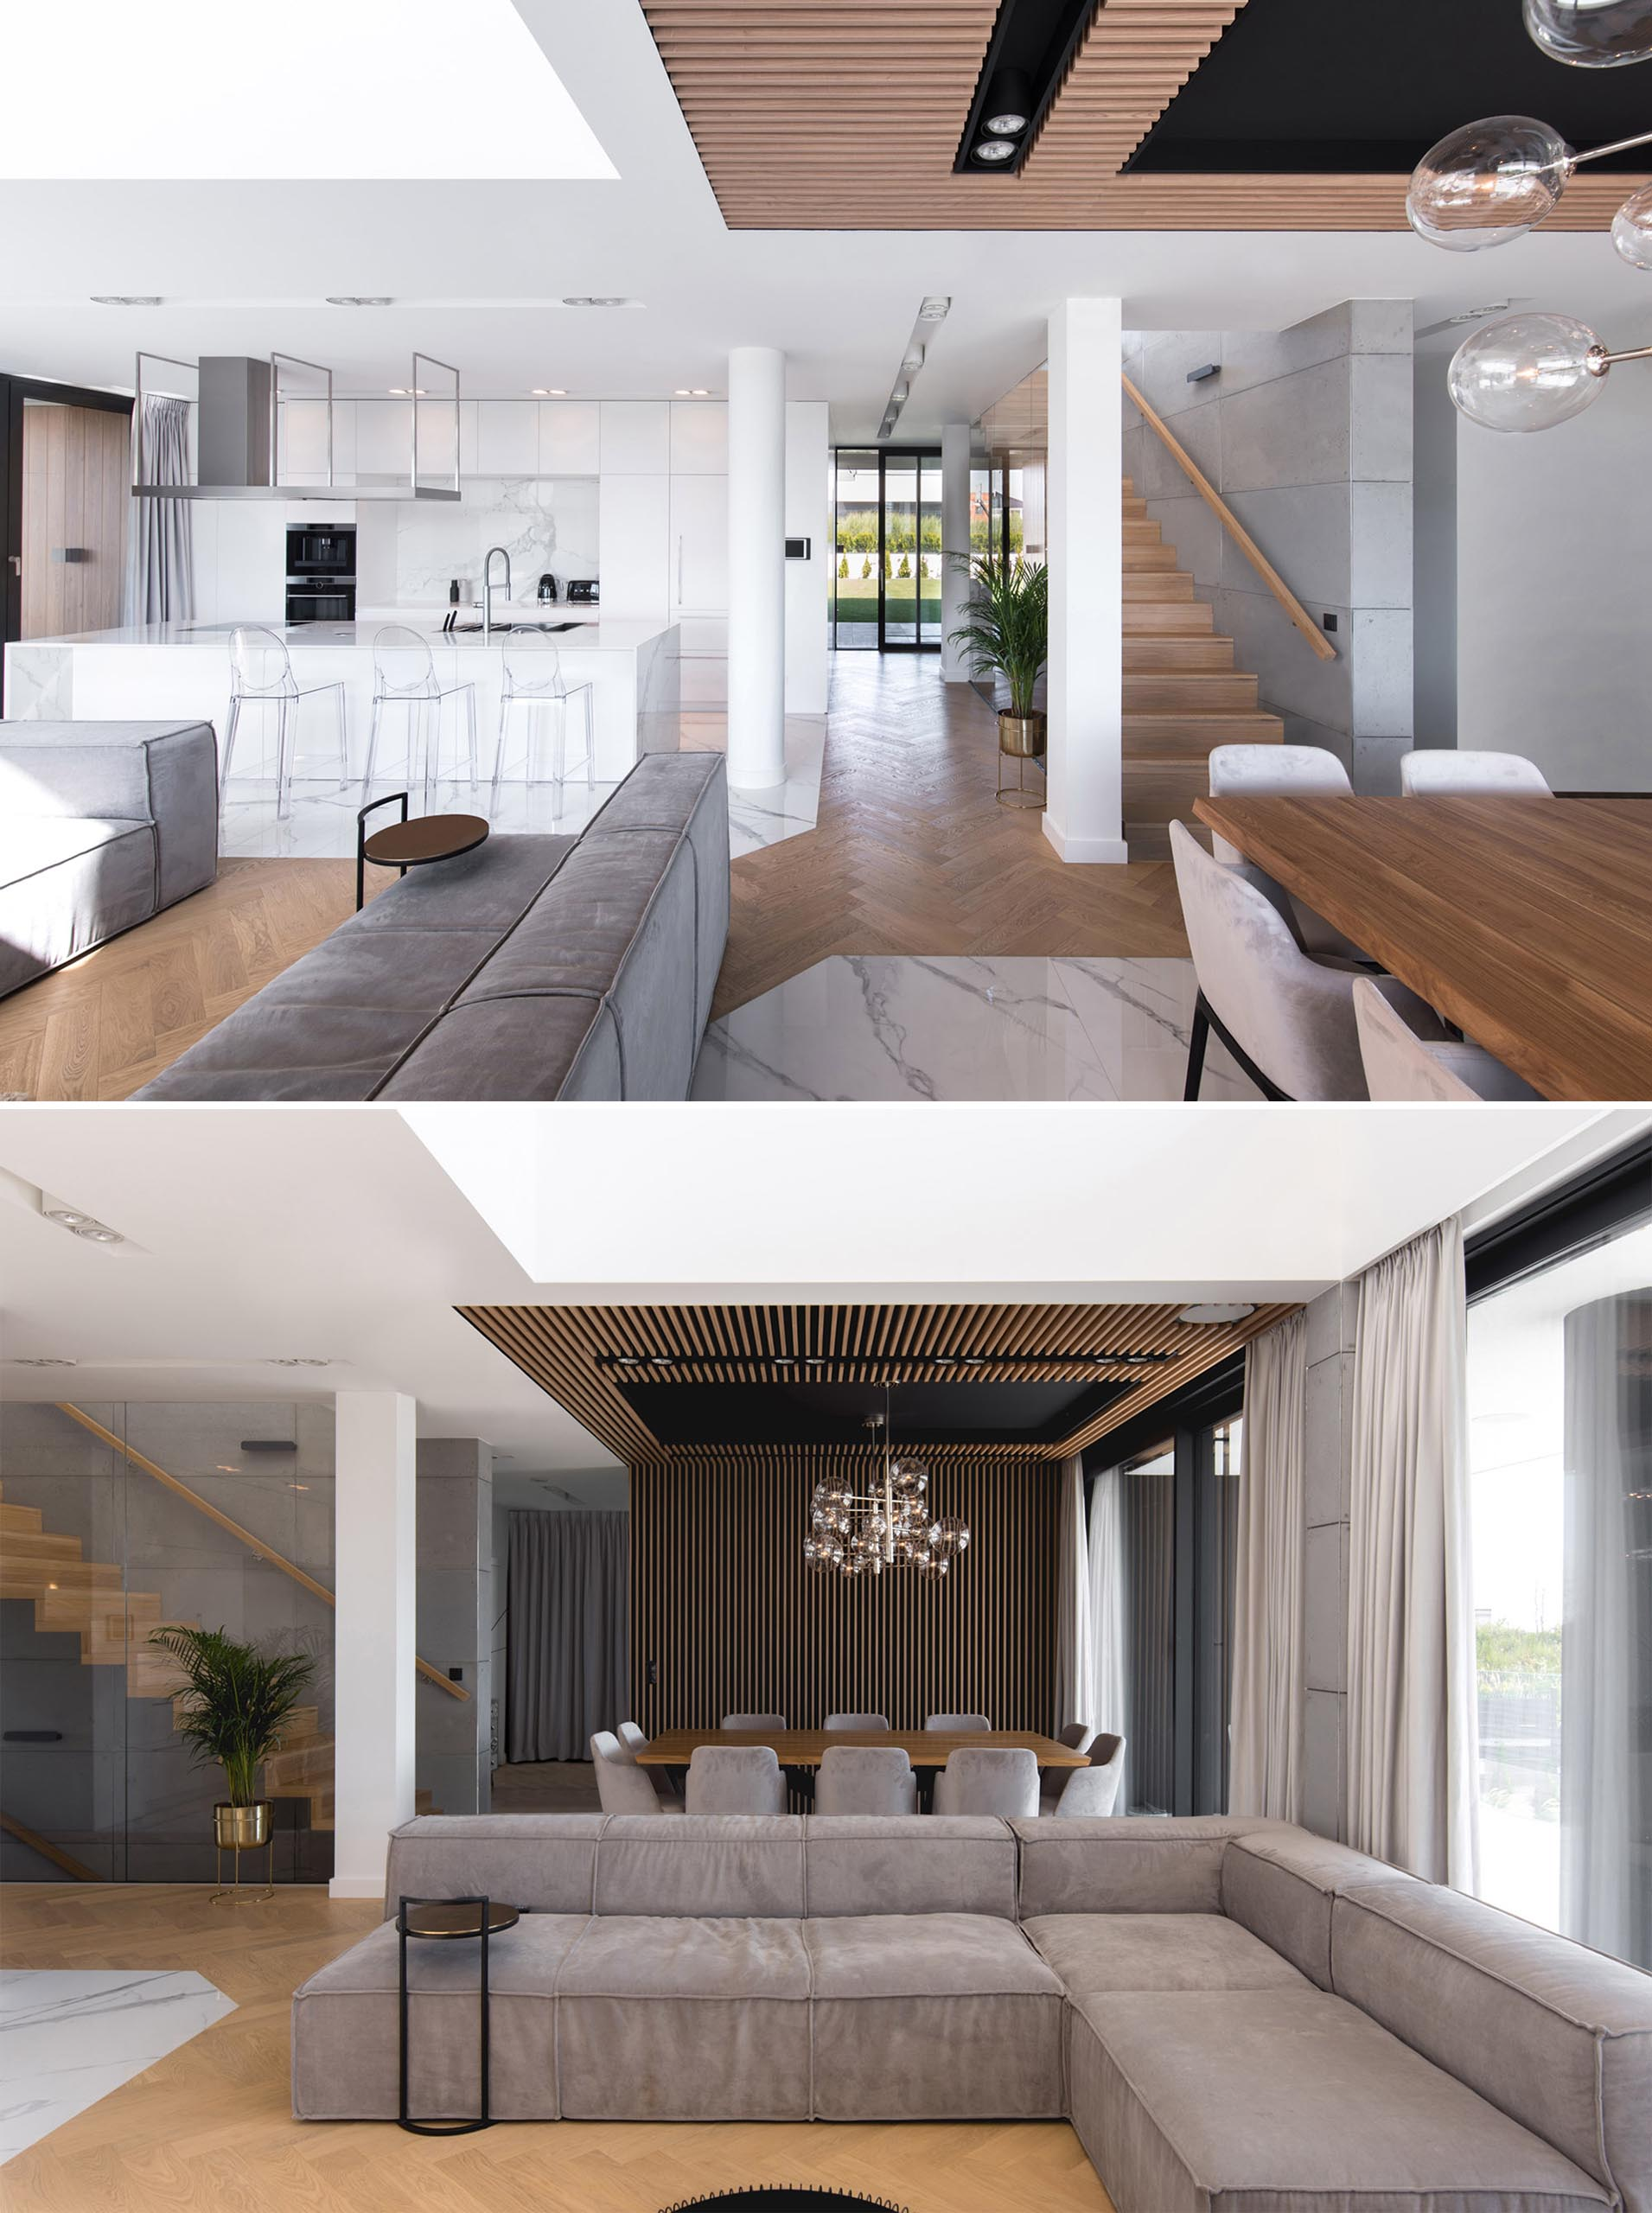 Inside this modern home, the living room and dining room are open plan. A wood slat accent wall in the dining room carries on to the ceiling, helping to define the area.